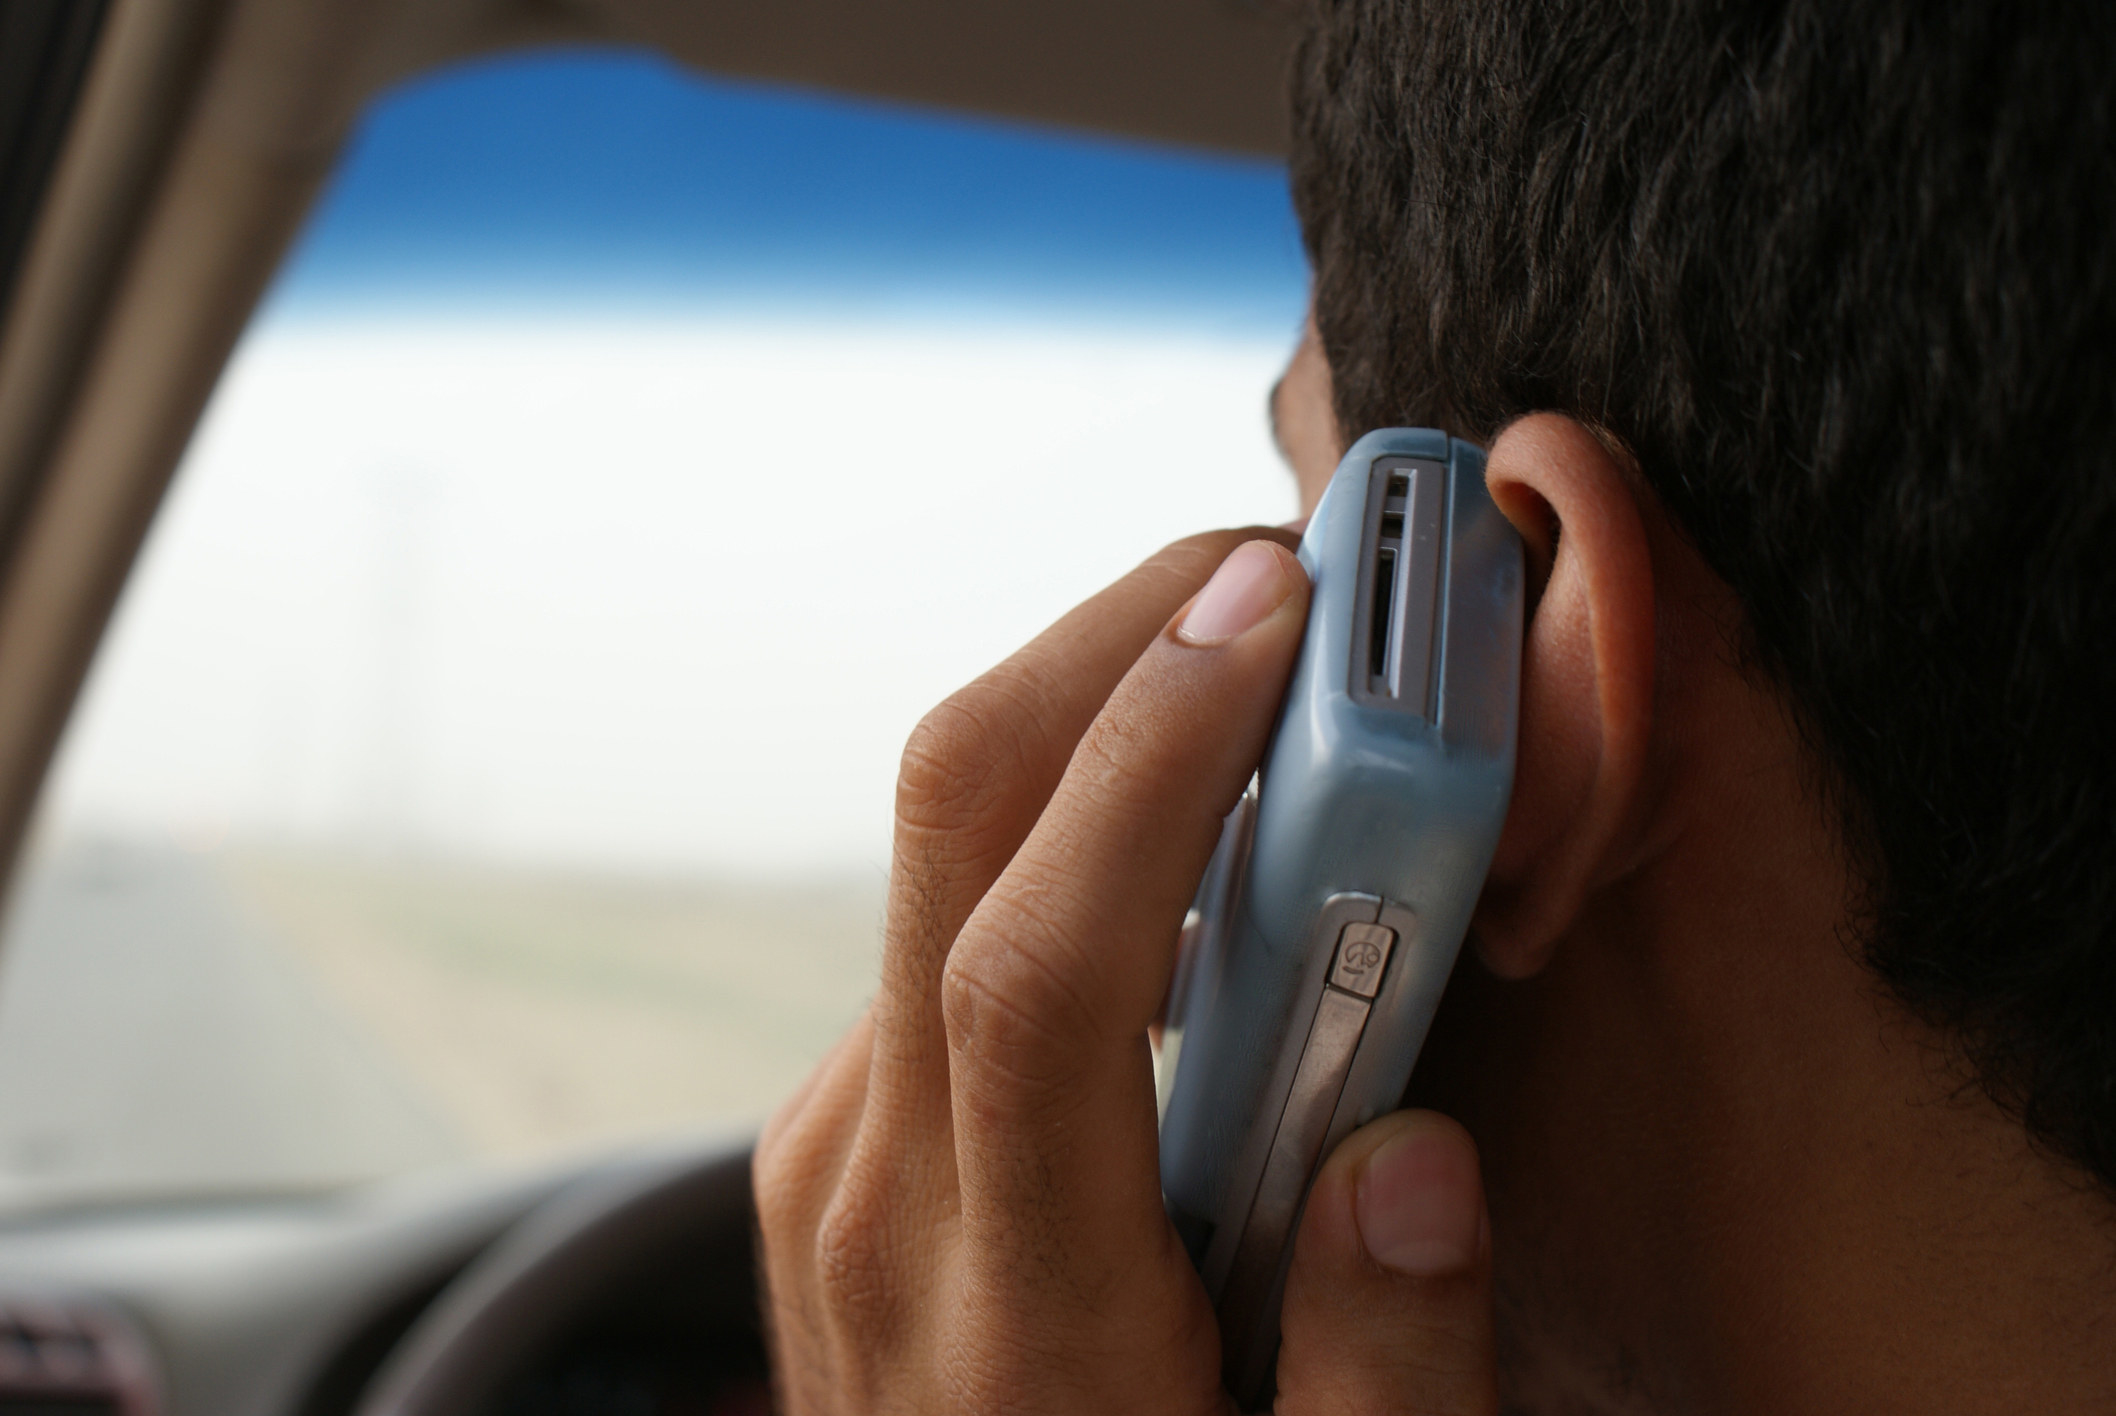 A stock image of a teen sitting in a car with phone up to his ear